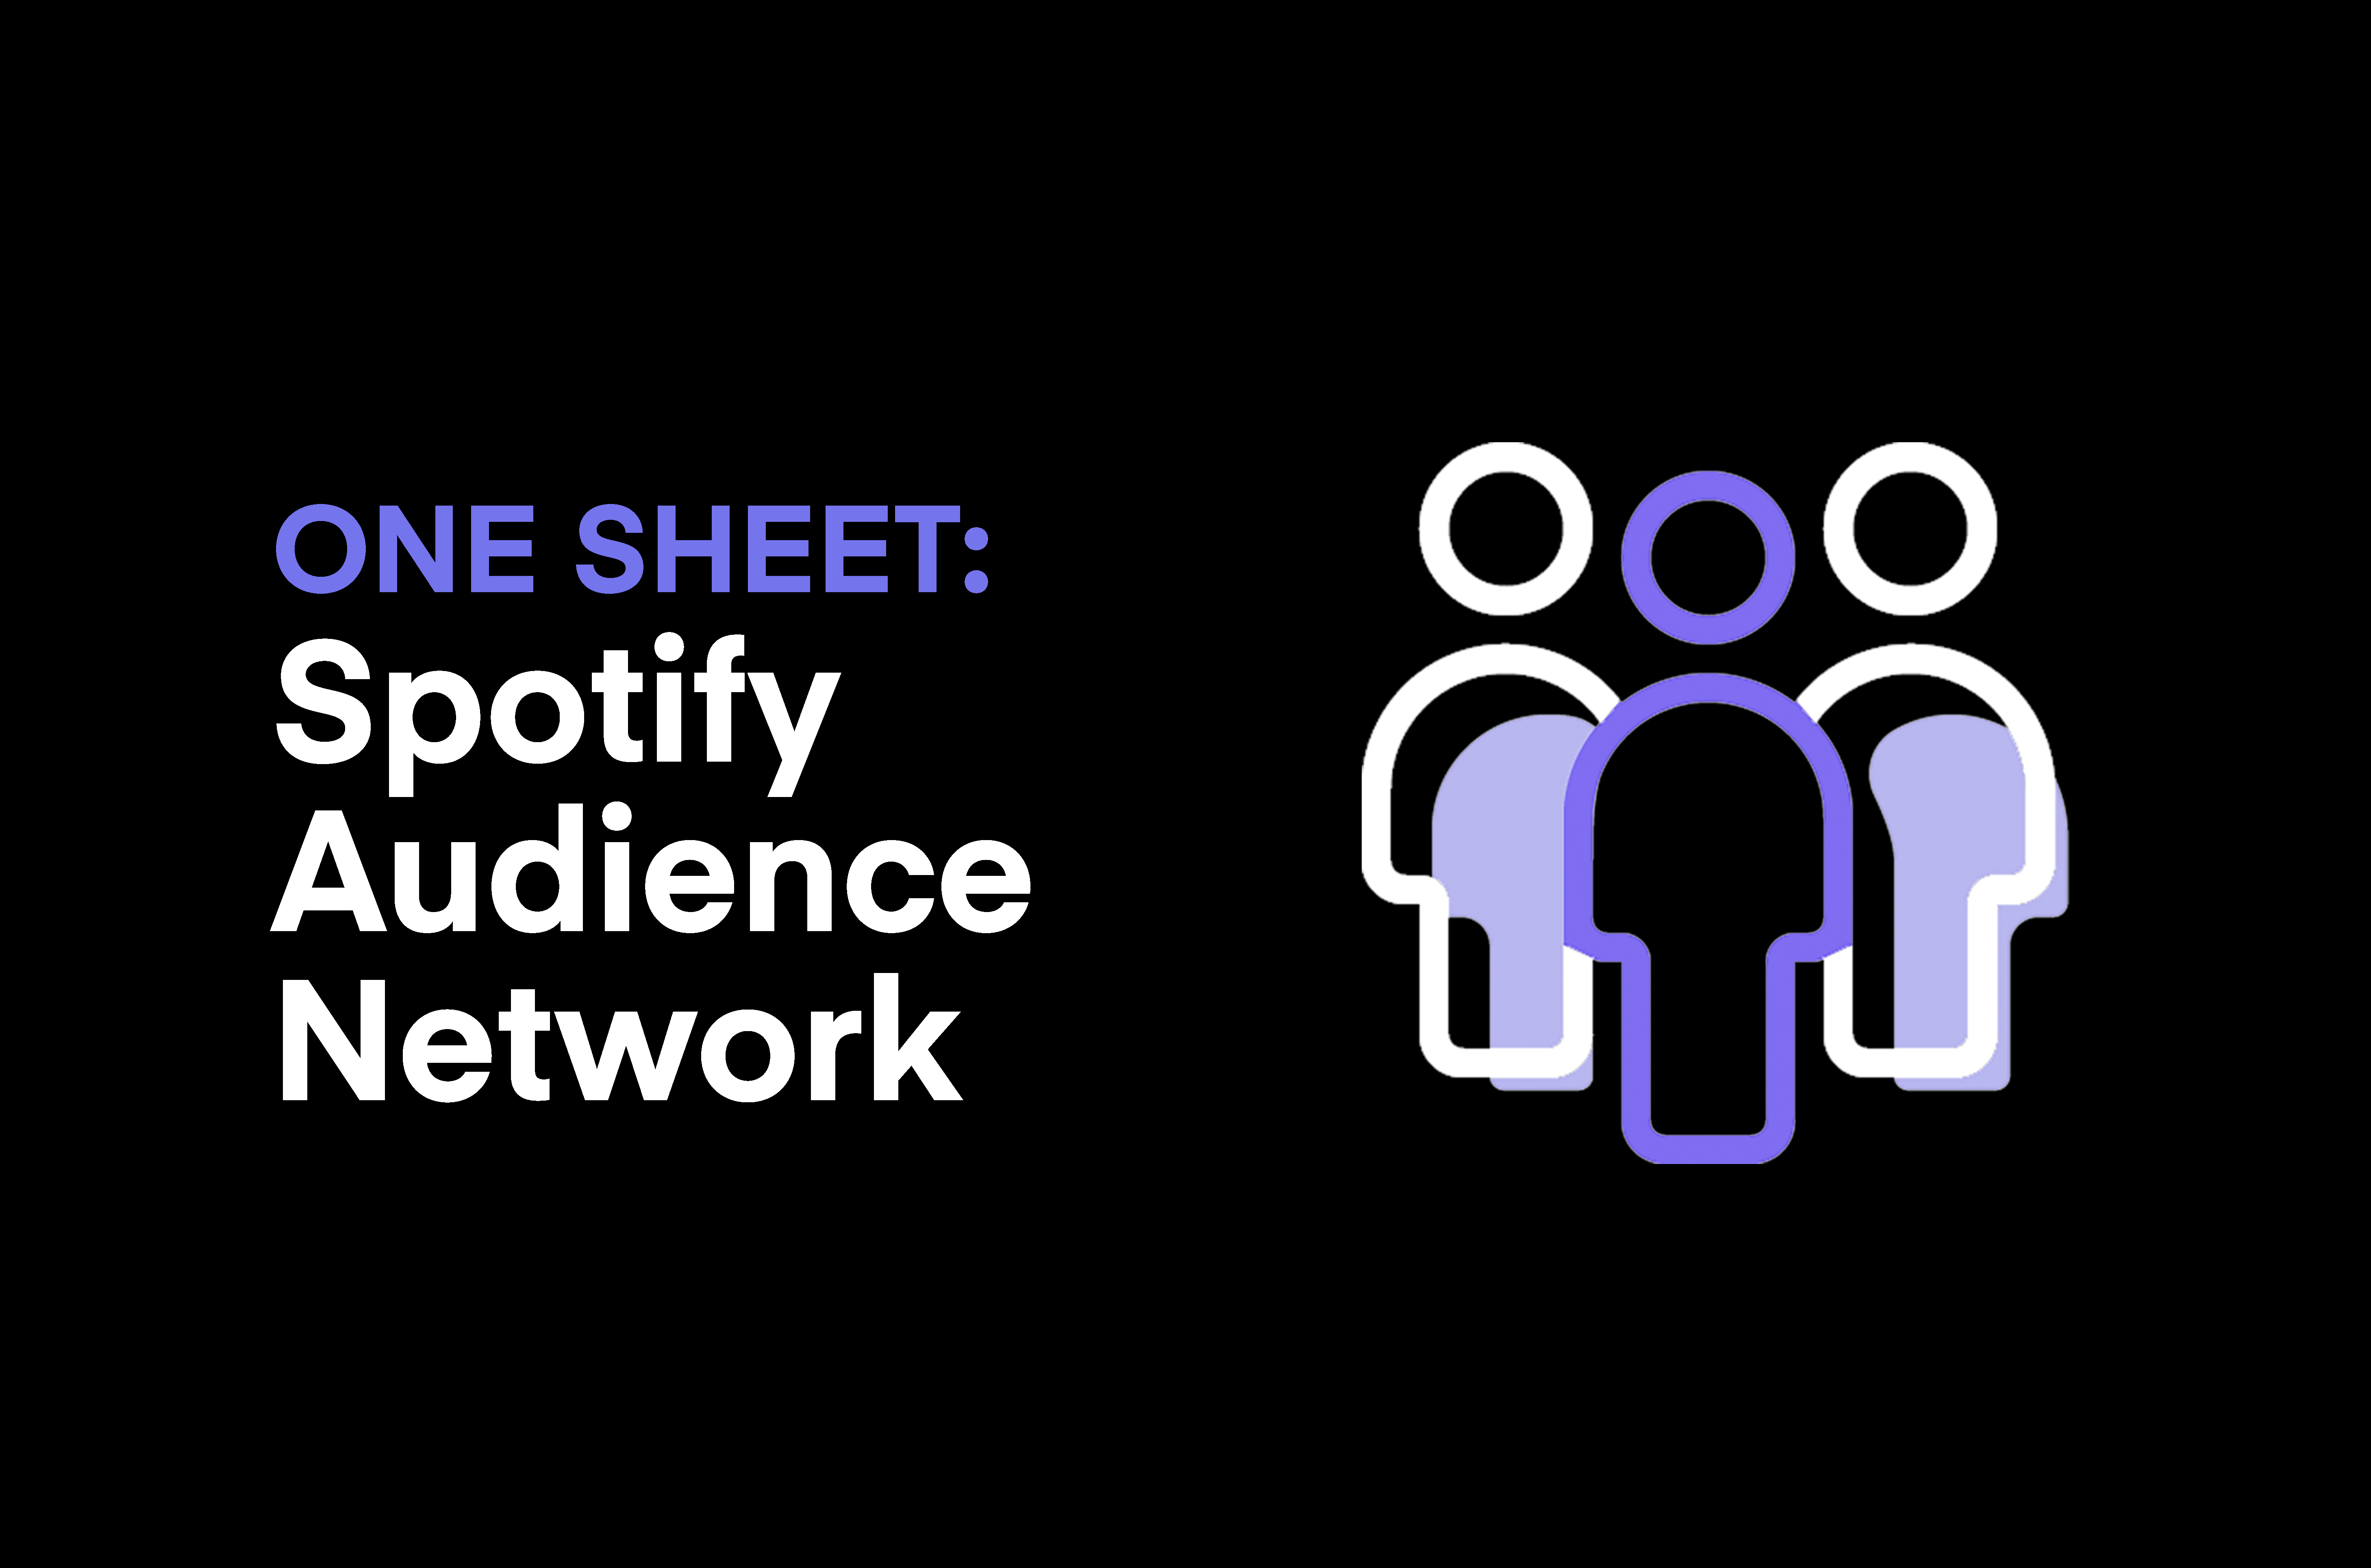 One Sheet: Spotify Audience Network